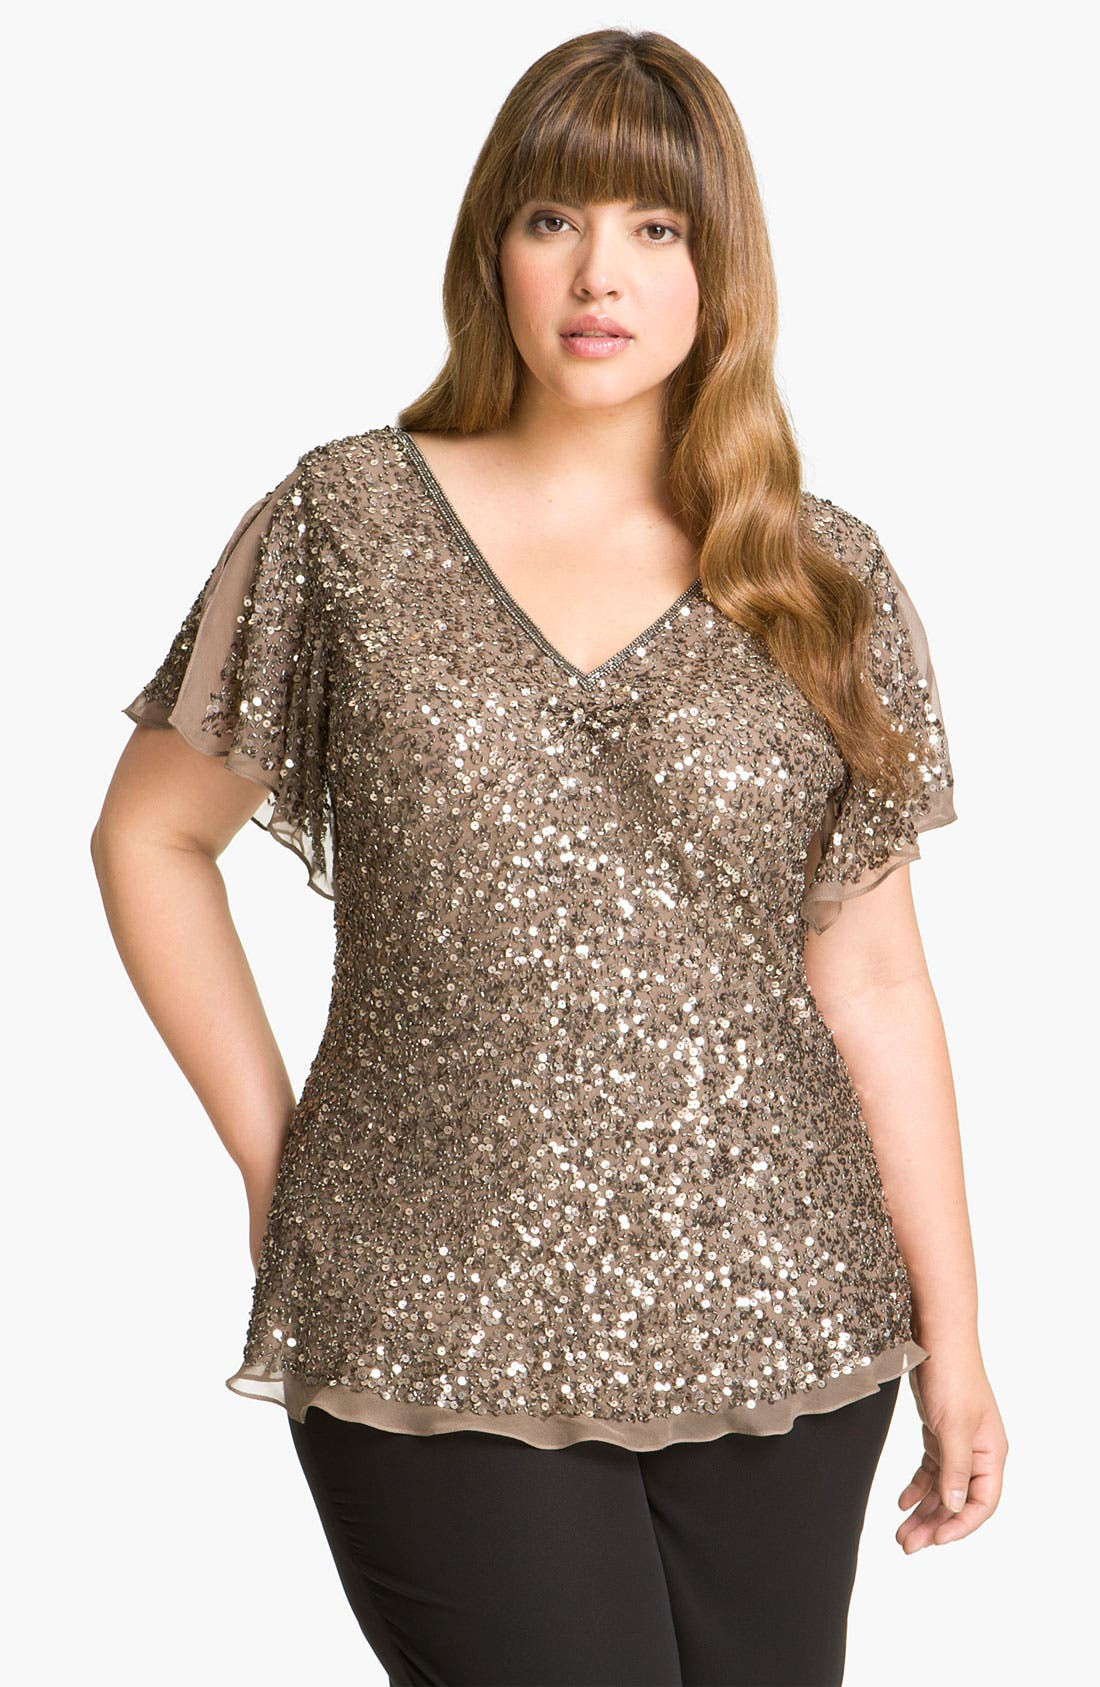 Alternate Image 1 Selected - Adrianna Papell Sequin Chiffon Top (Plus Size)